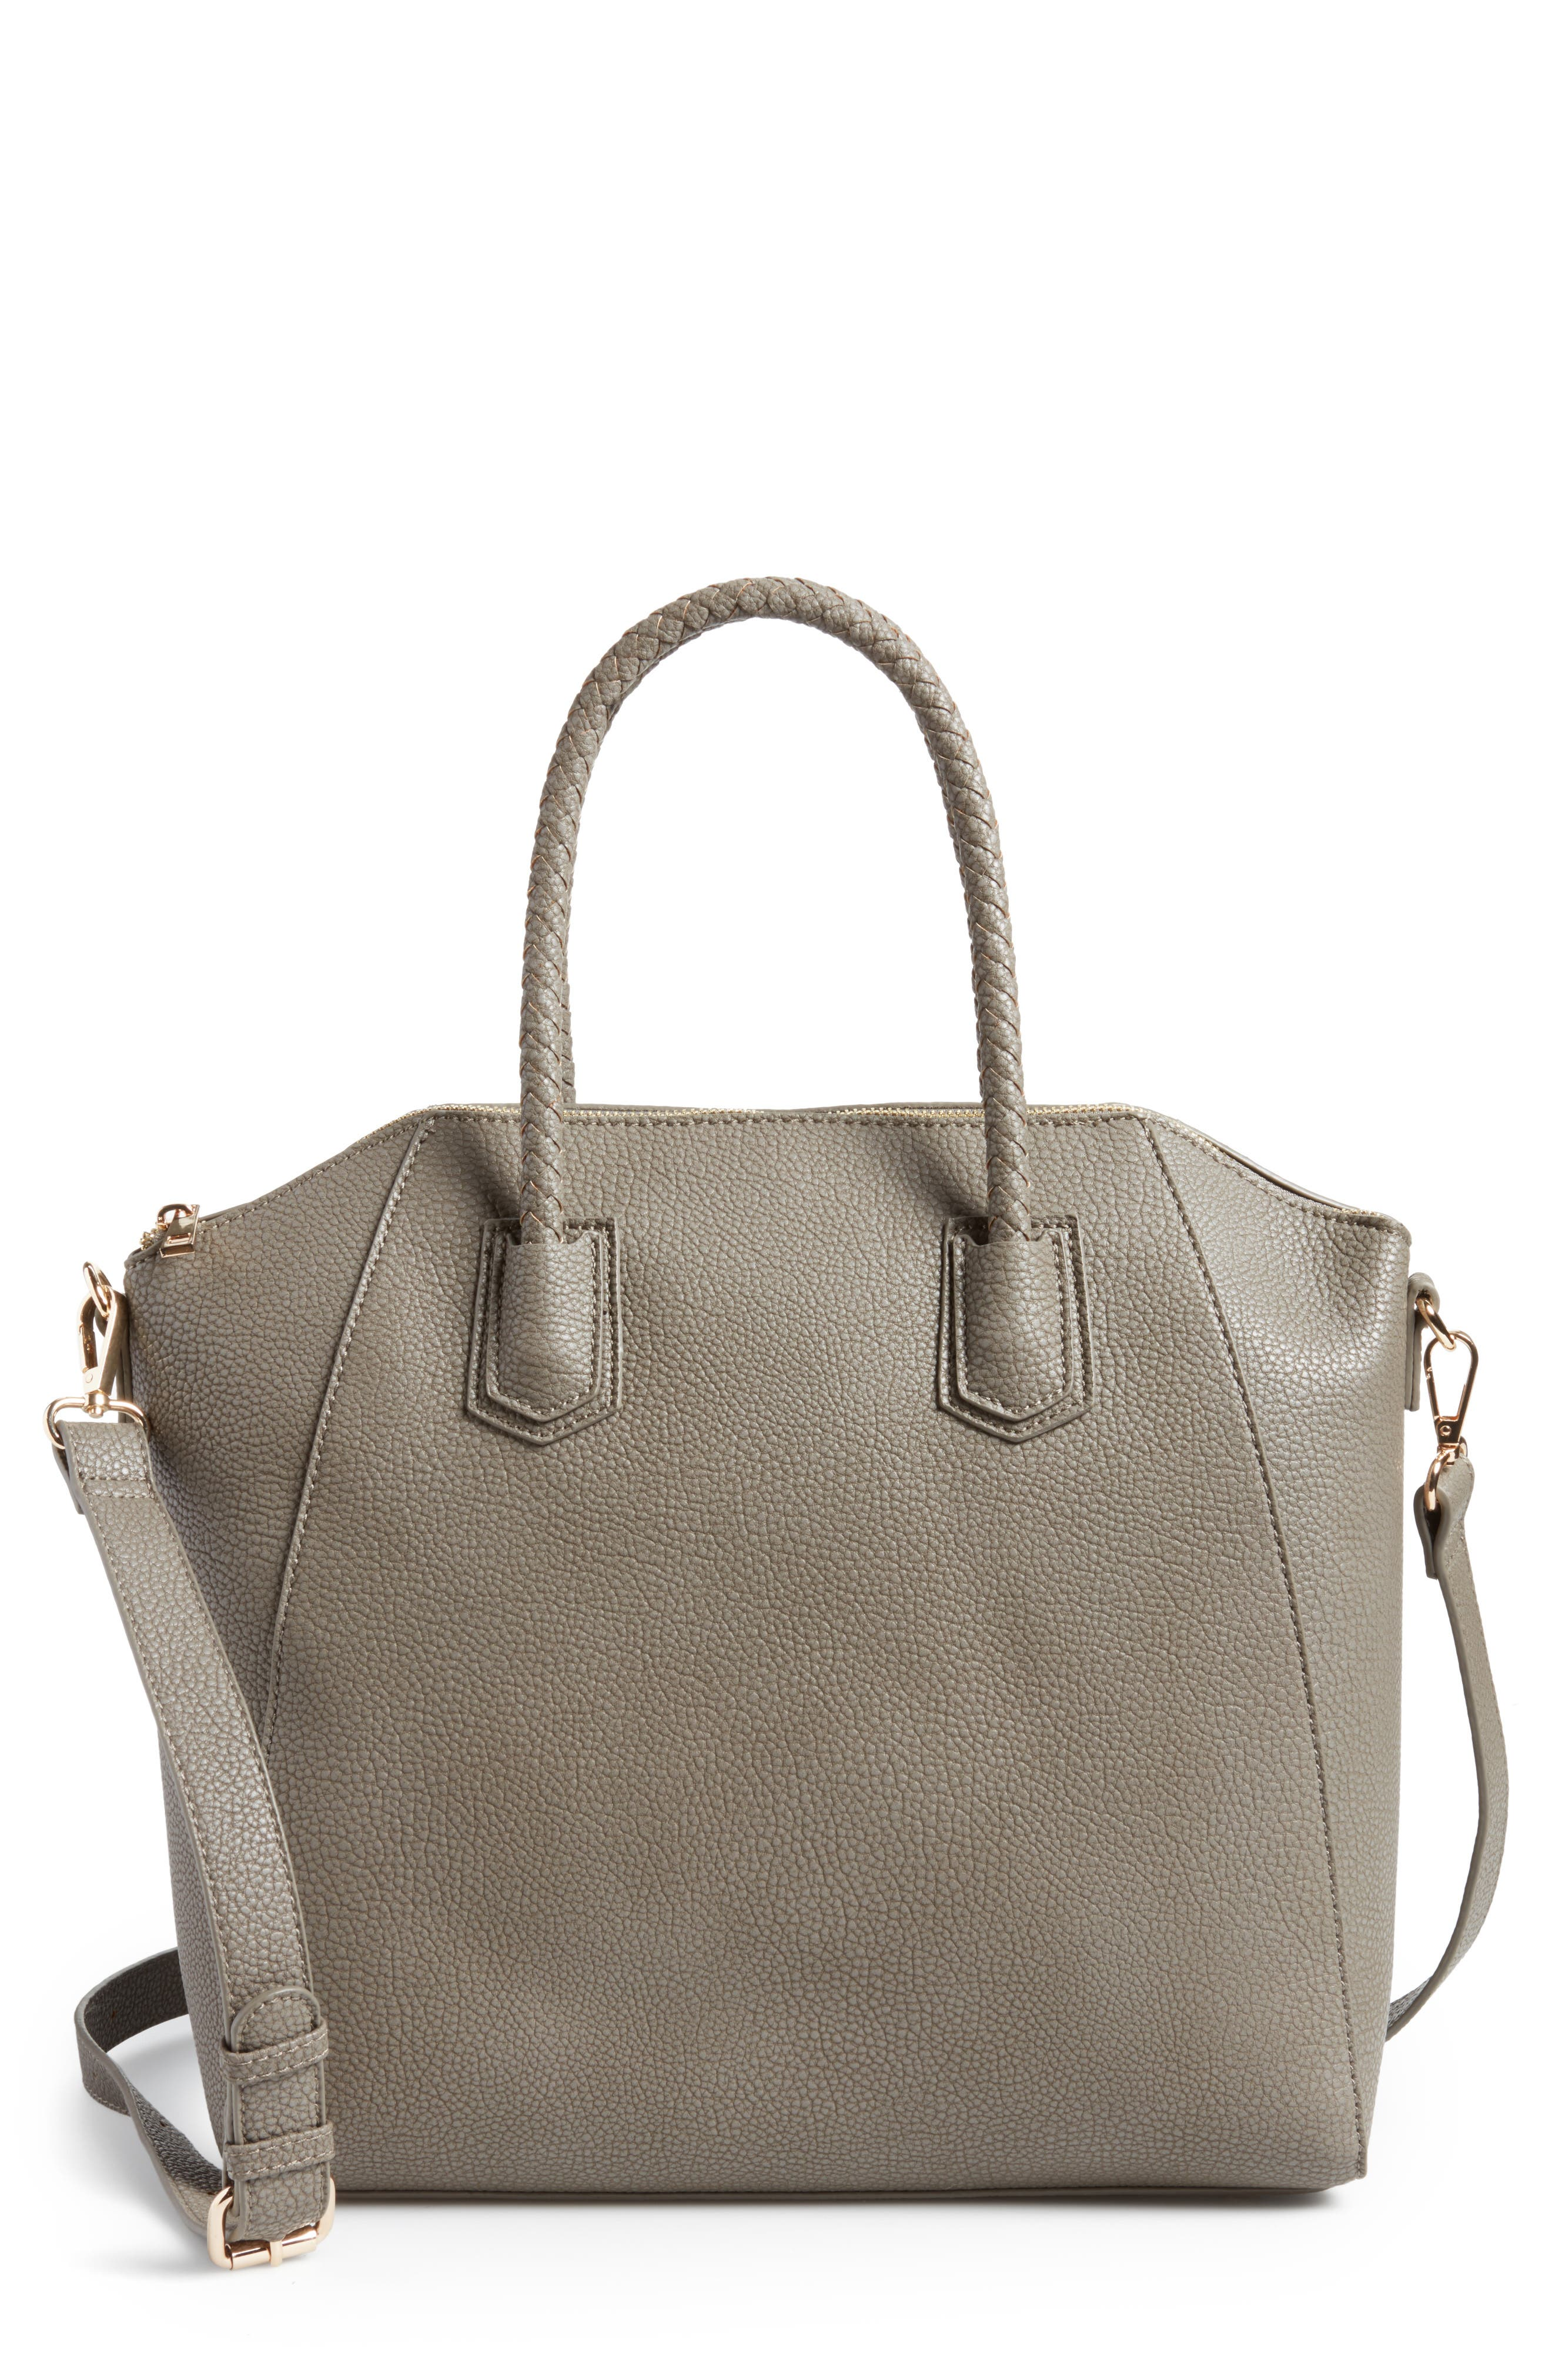 Giada Braided Faux Leather Satchel,                             Main thumbnail 1, color,                             Grey